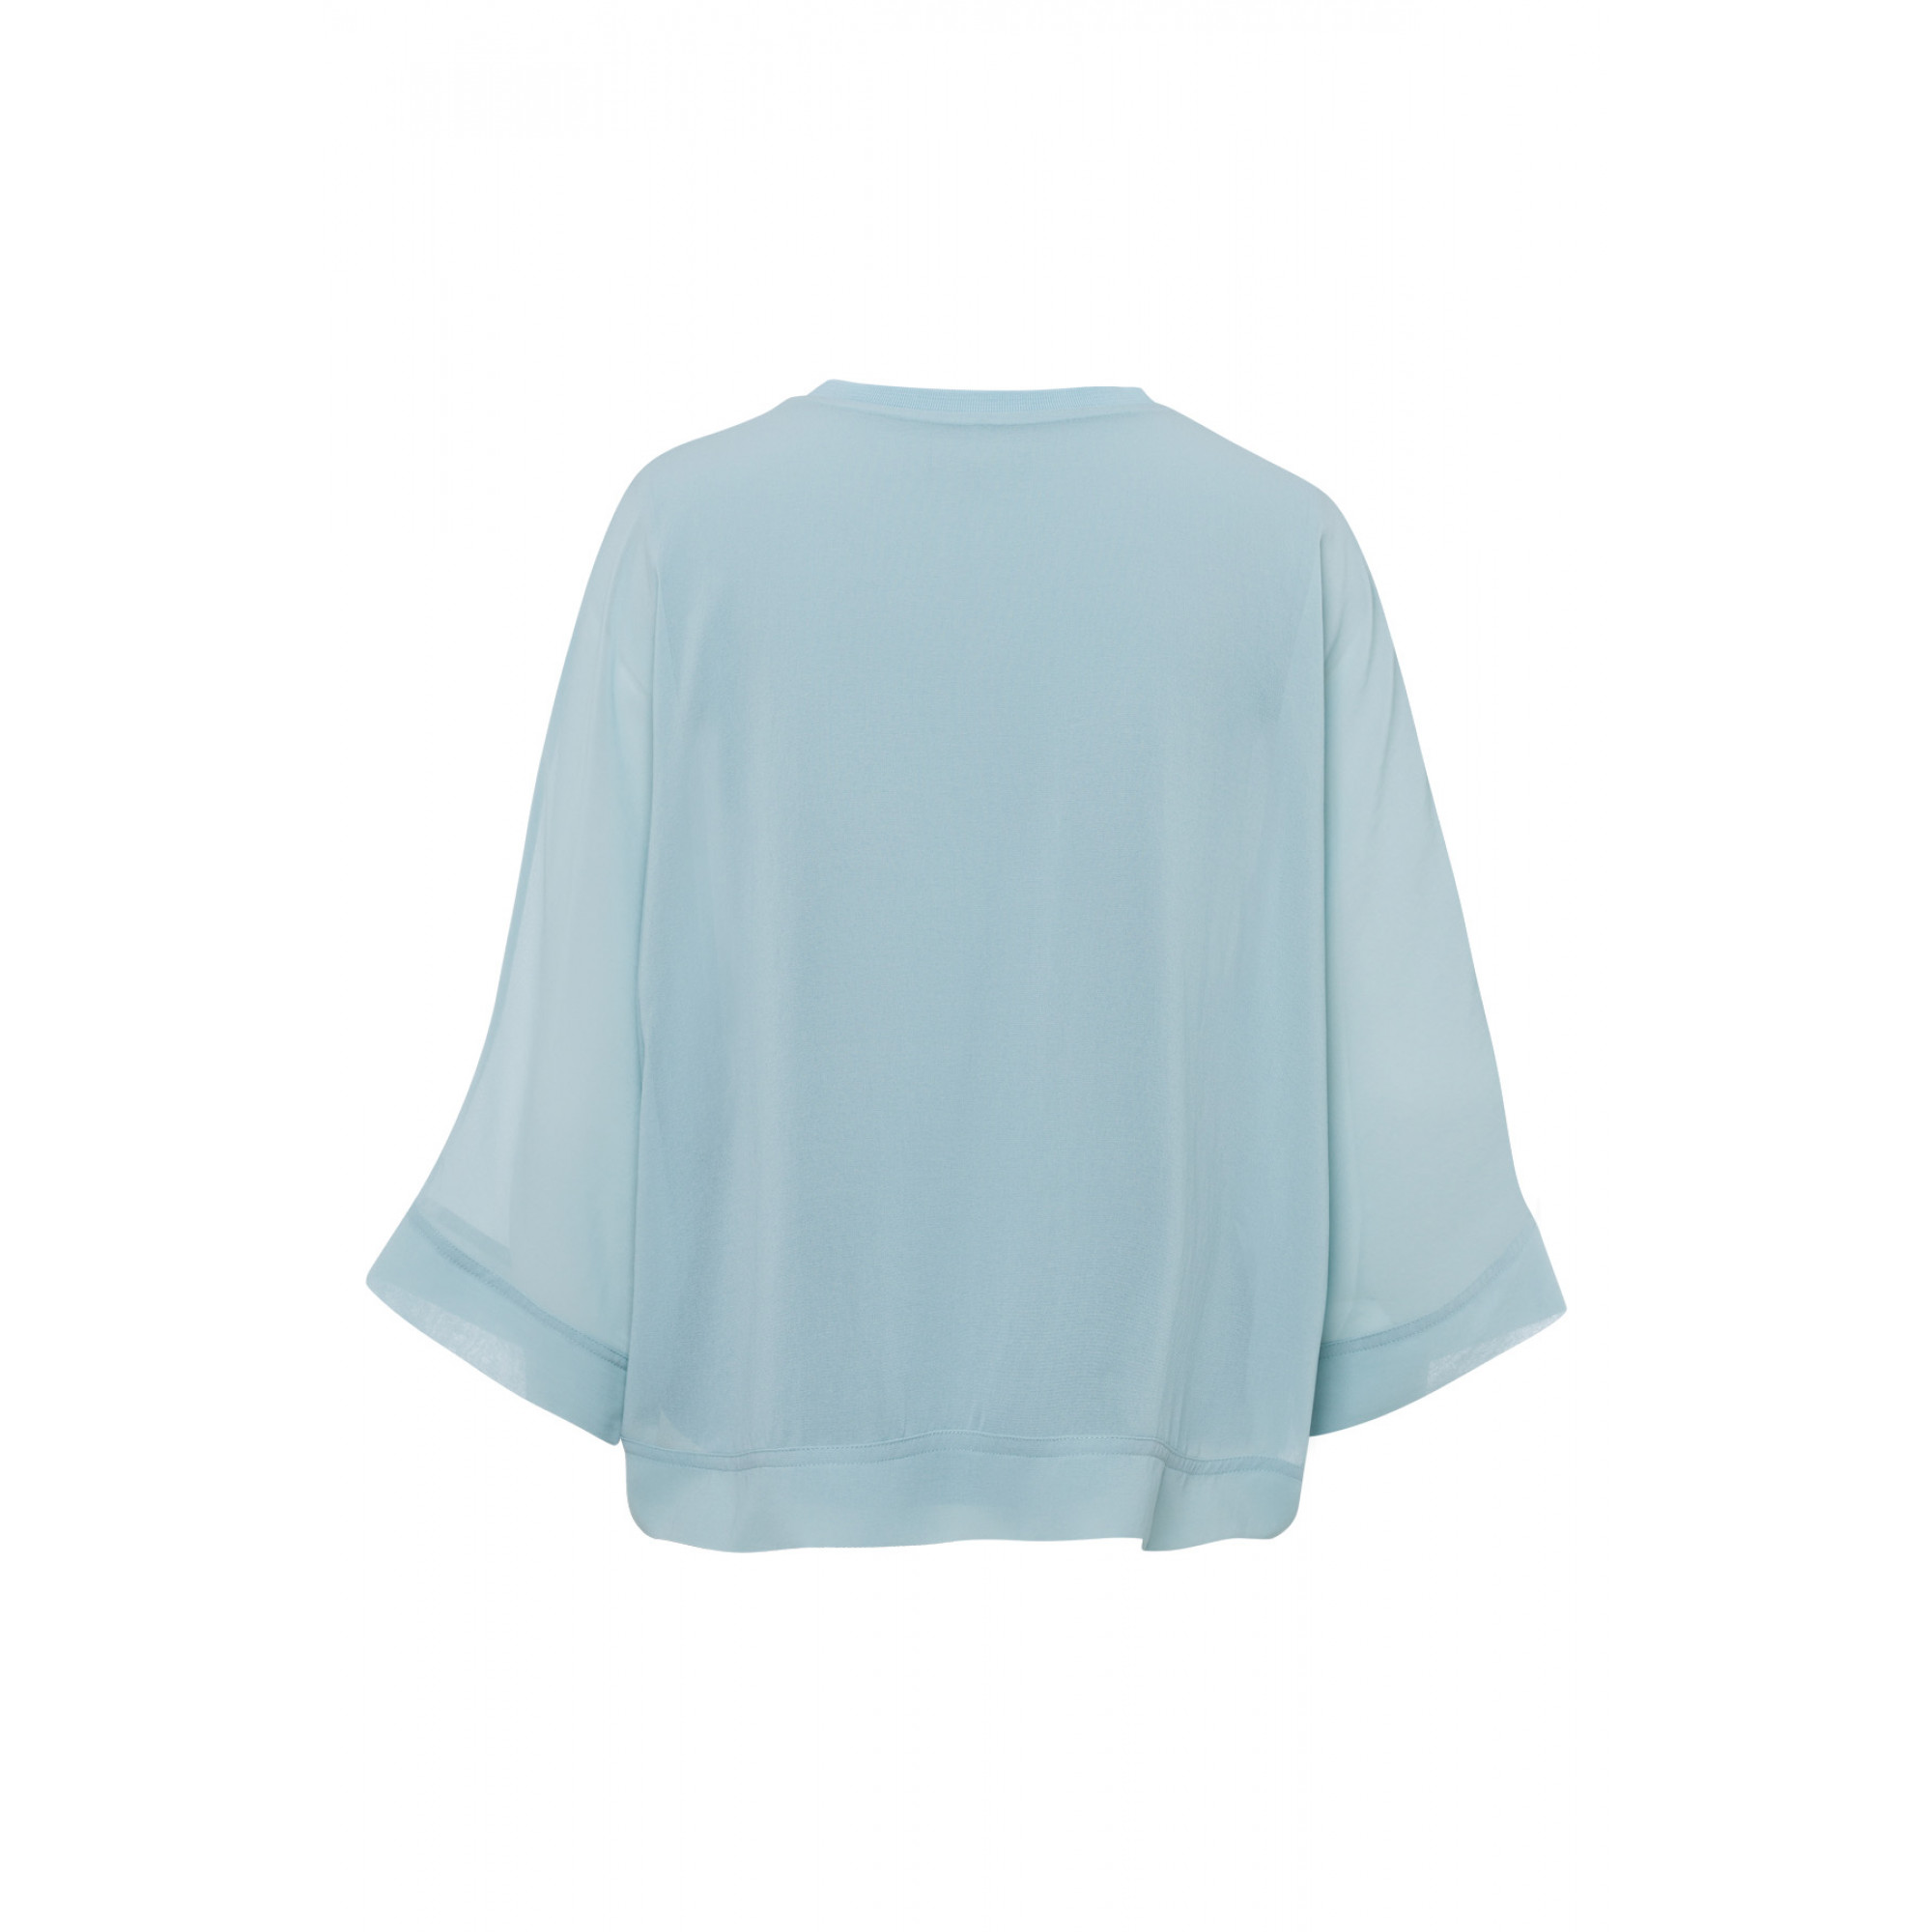 Chiffonbluse, powder mint 91032026-0613 2